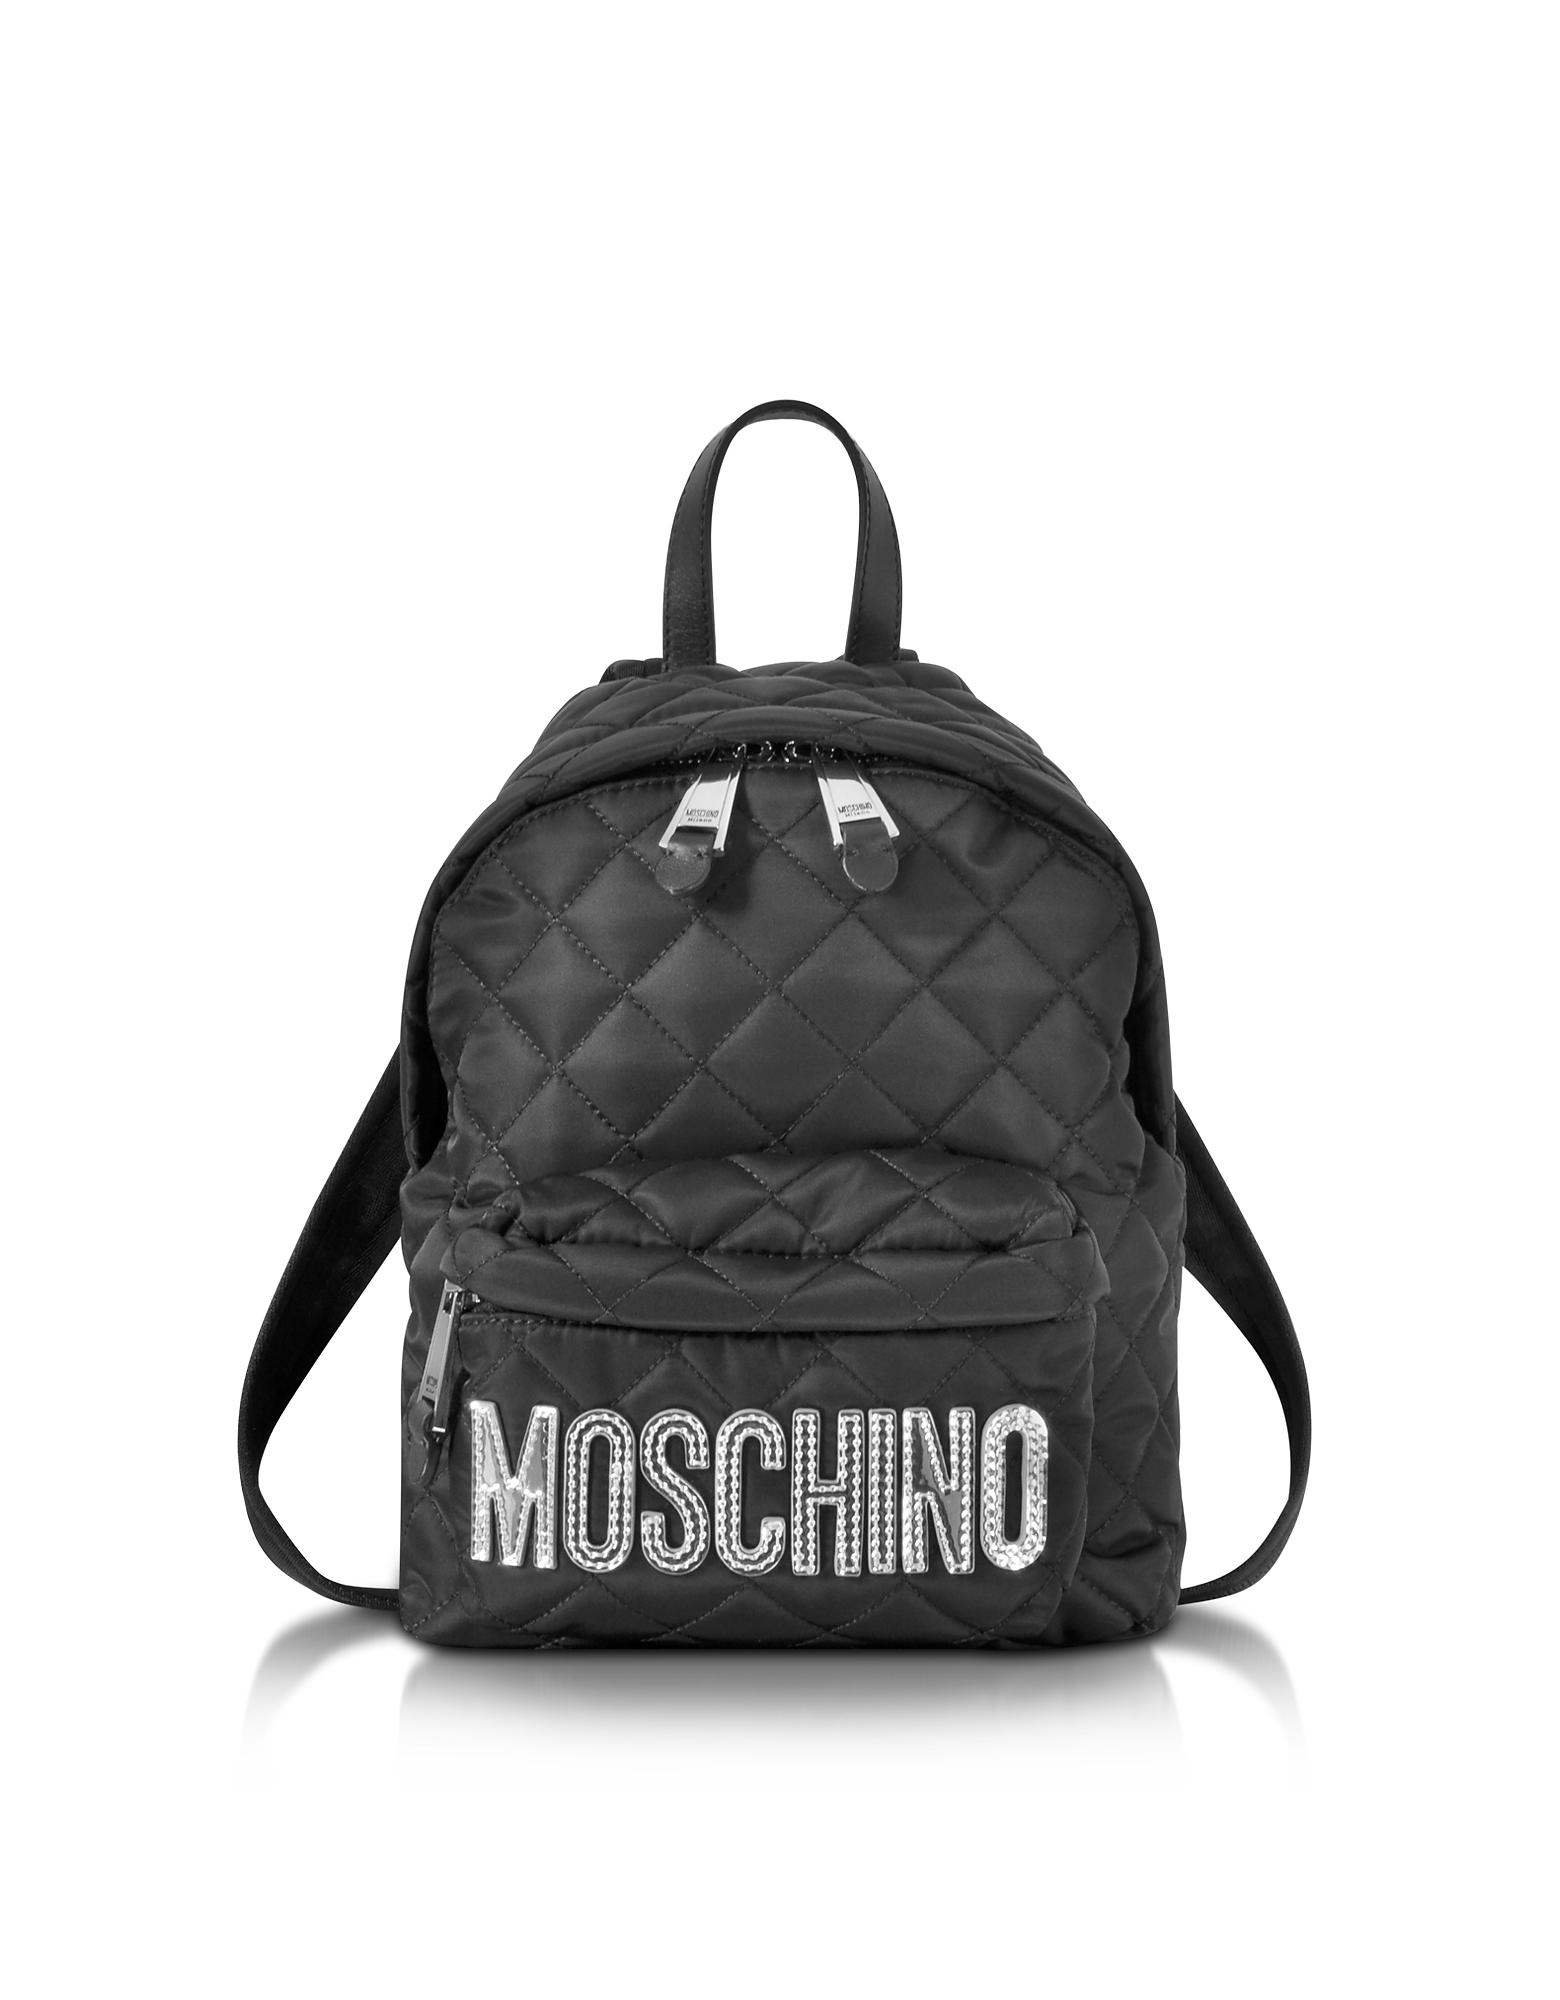 Black Quilted Nylon Small Backpack w/Silver Logo